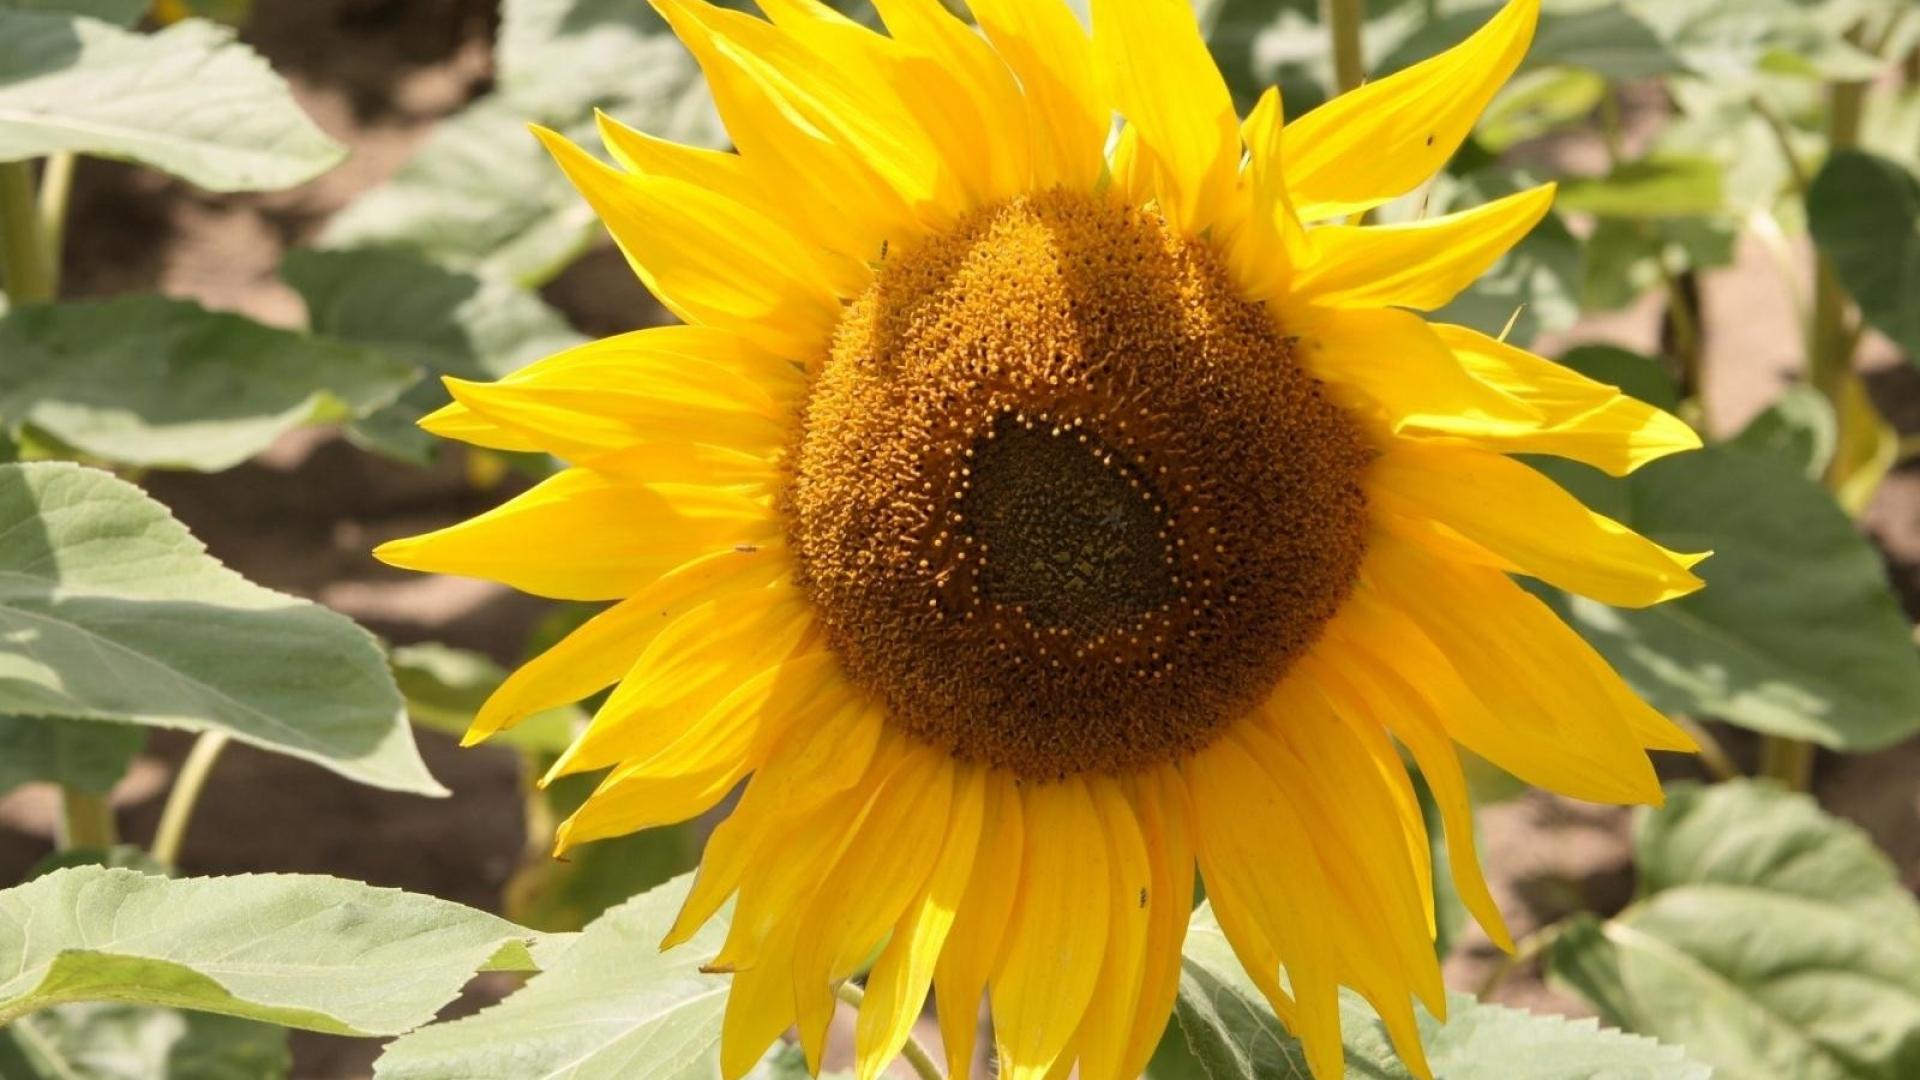 Download Wallpaper 1920x1080 sunflower, yellow, leaves ...